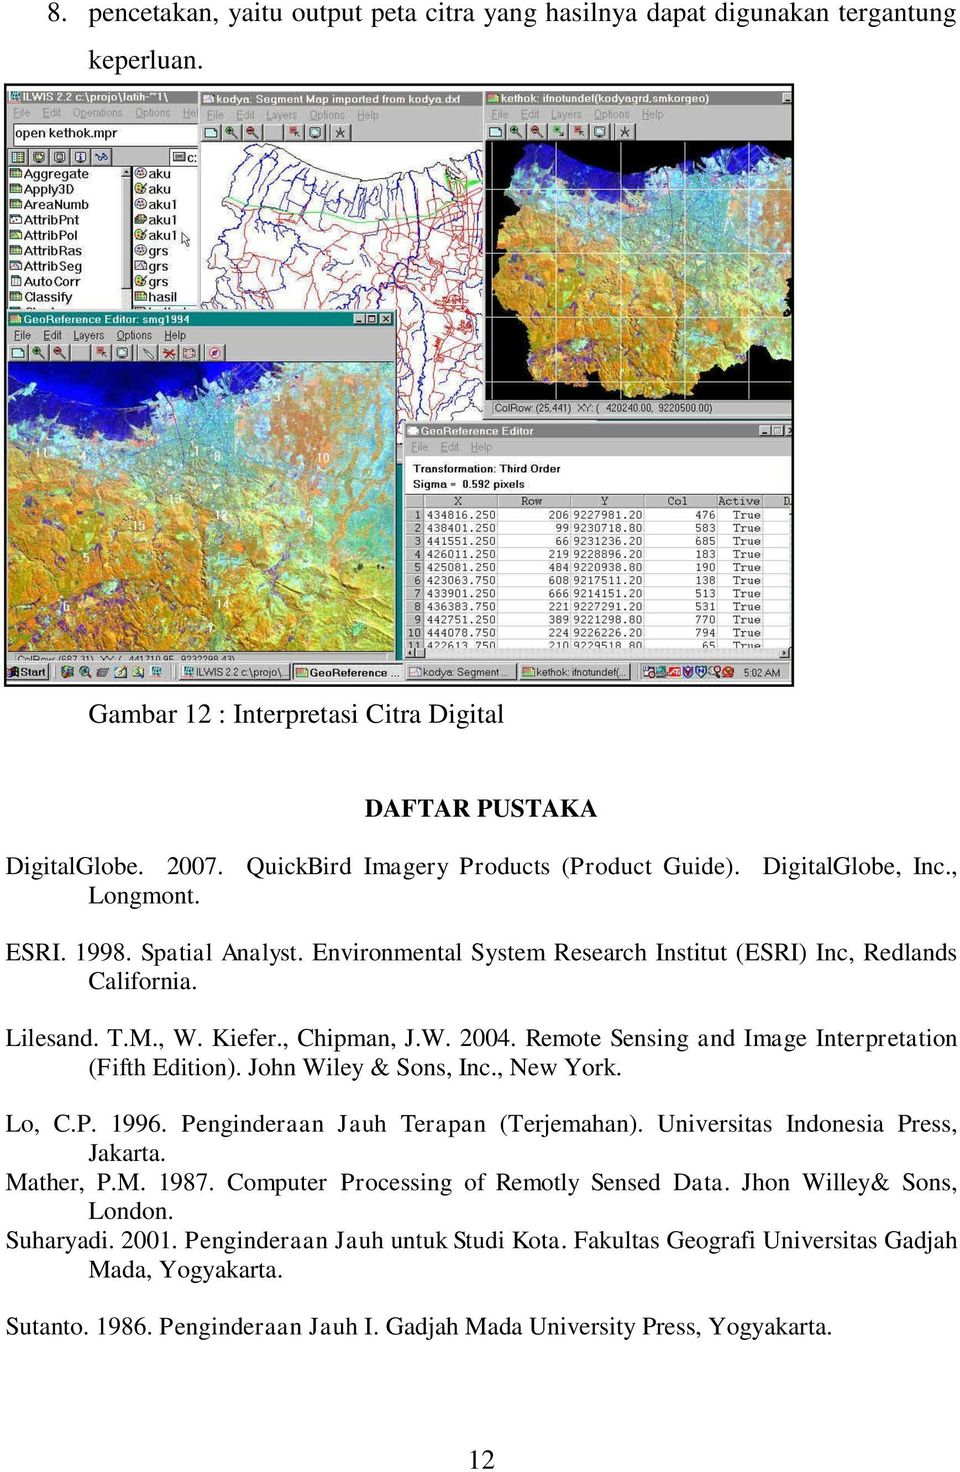 Kiefer., Chipman, J.W. 2004. Remote Sensing and Image Interpretation (Fifth Edition). John Wiley & Sons, Inc., New York. Lo, C.P. 1996. Penginderaan Jauh Terapan (Terjemahan).